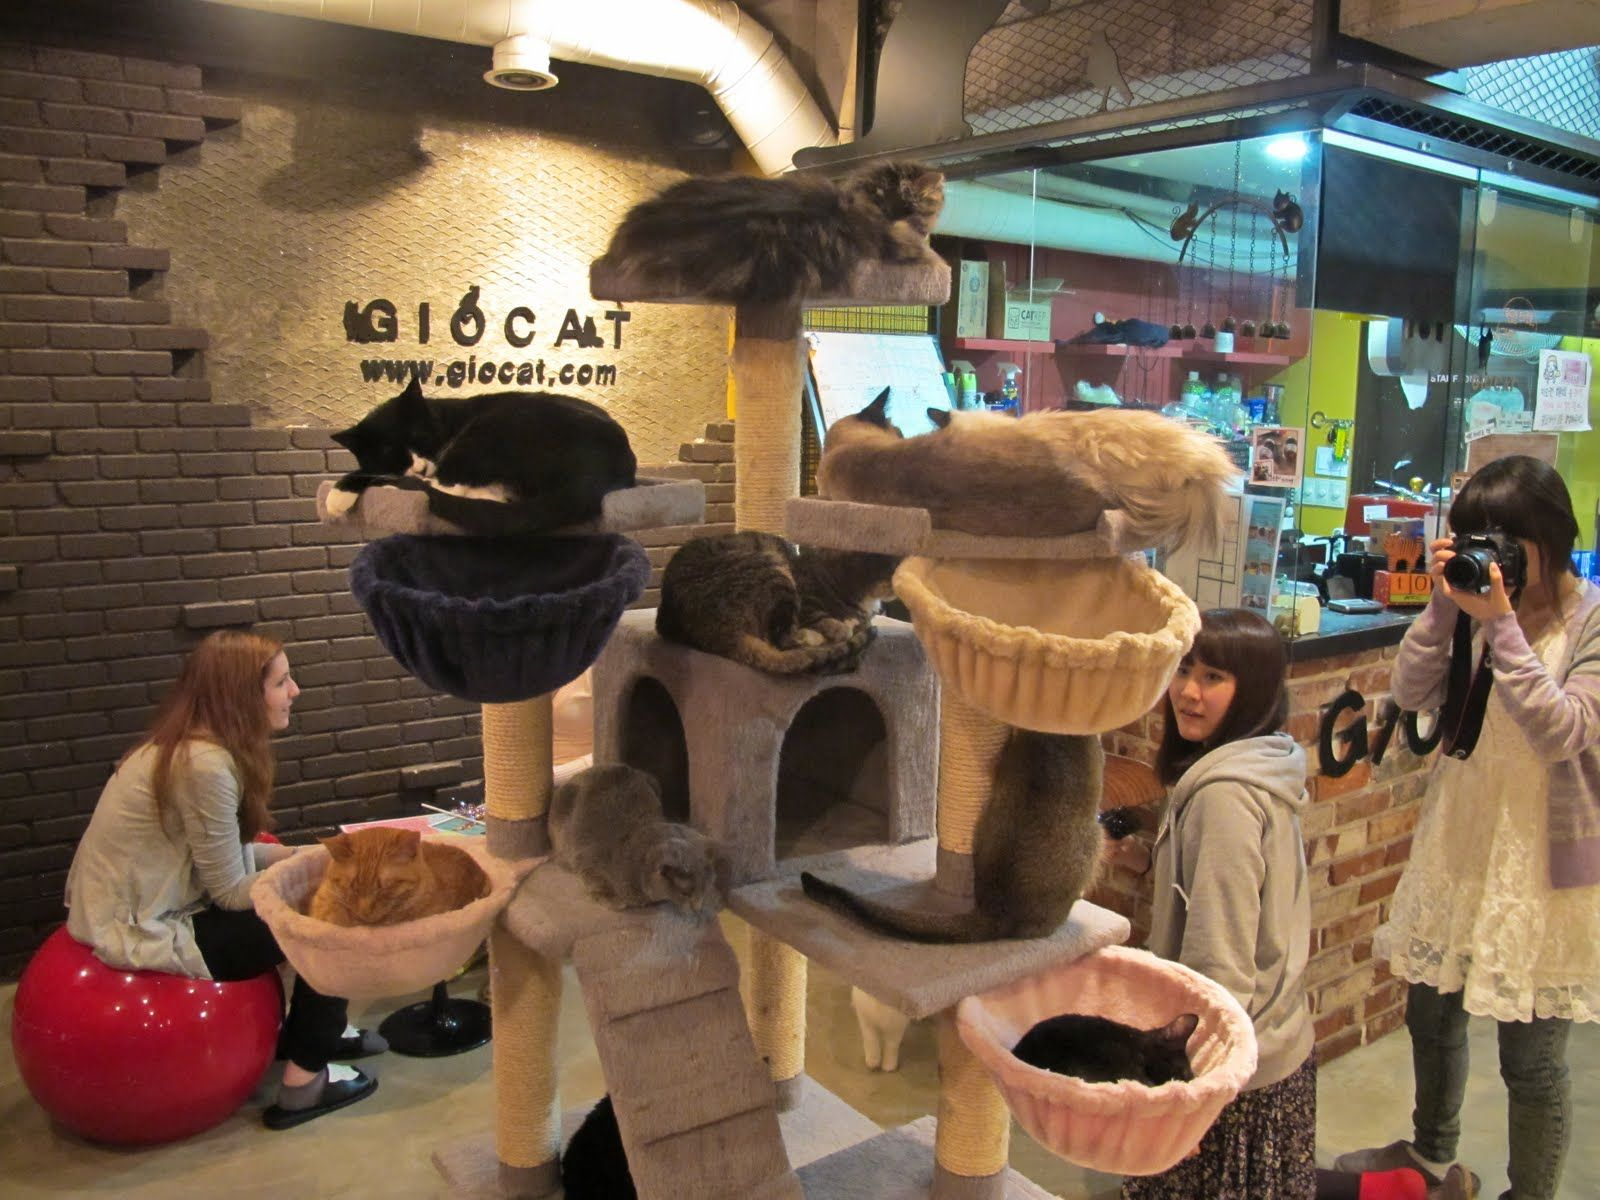 It has been well over ten years since the first cat cafe